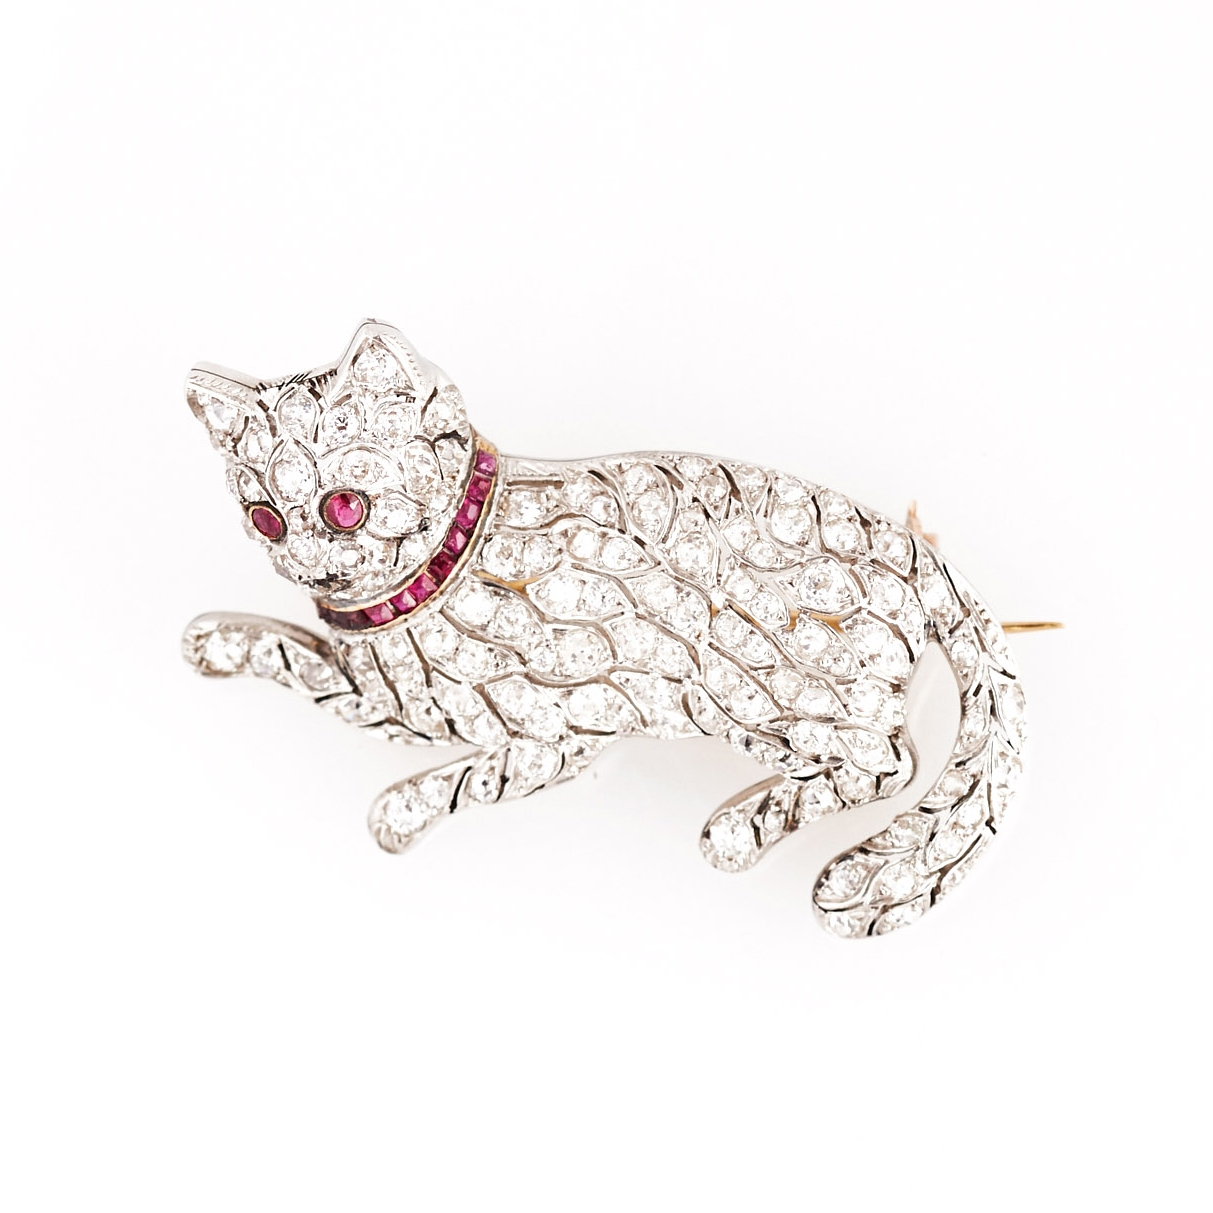 Edwardian Platinum, Ruby, and Diamond Cat Brooch